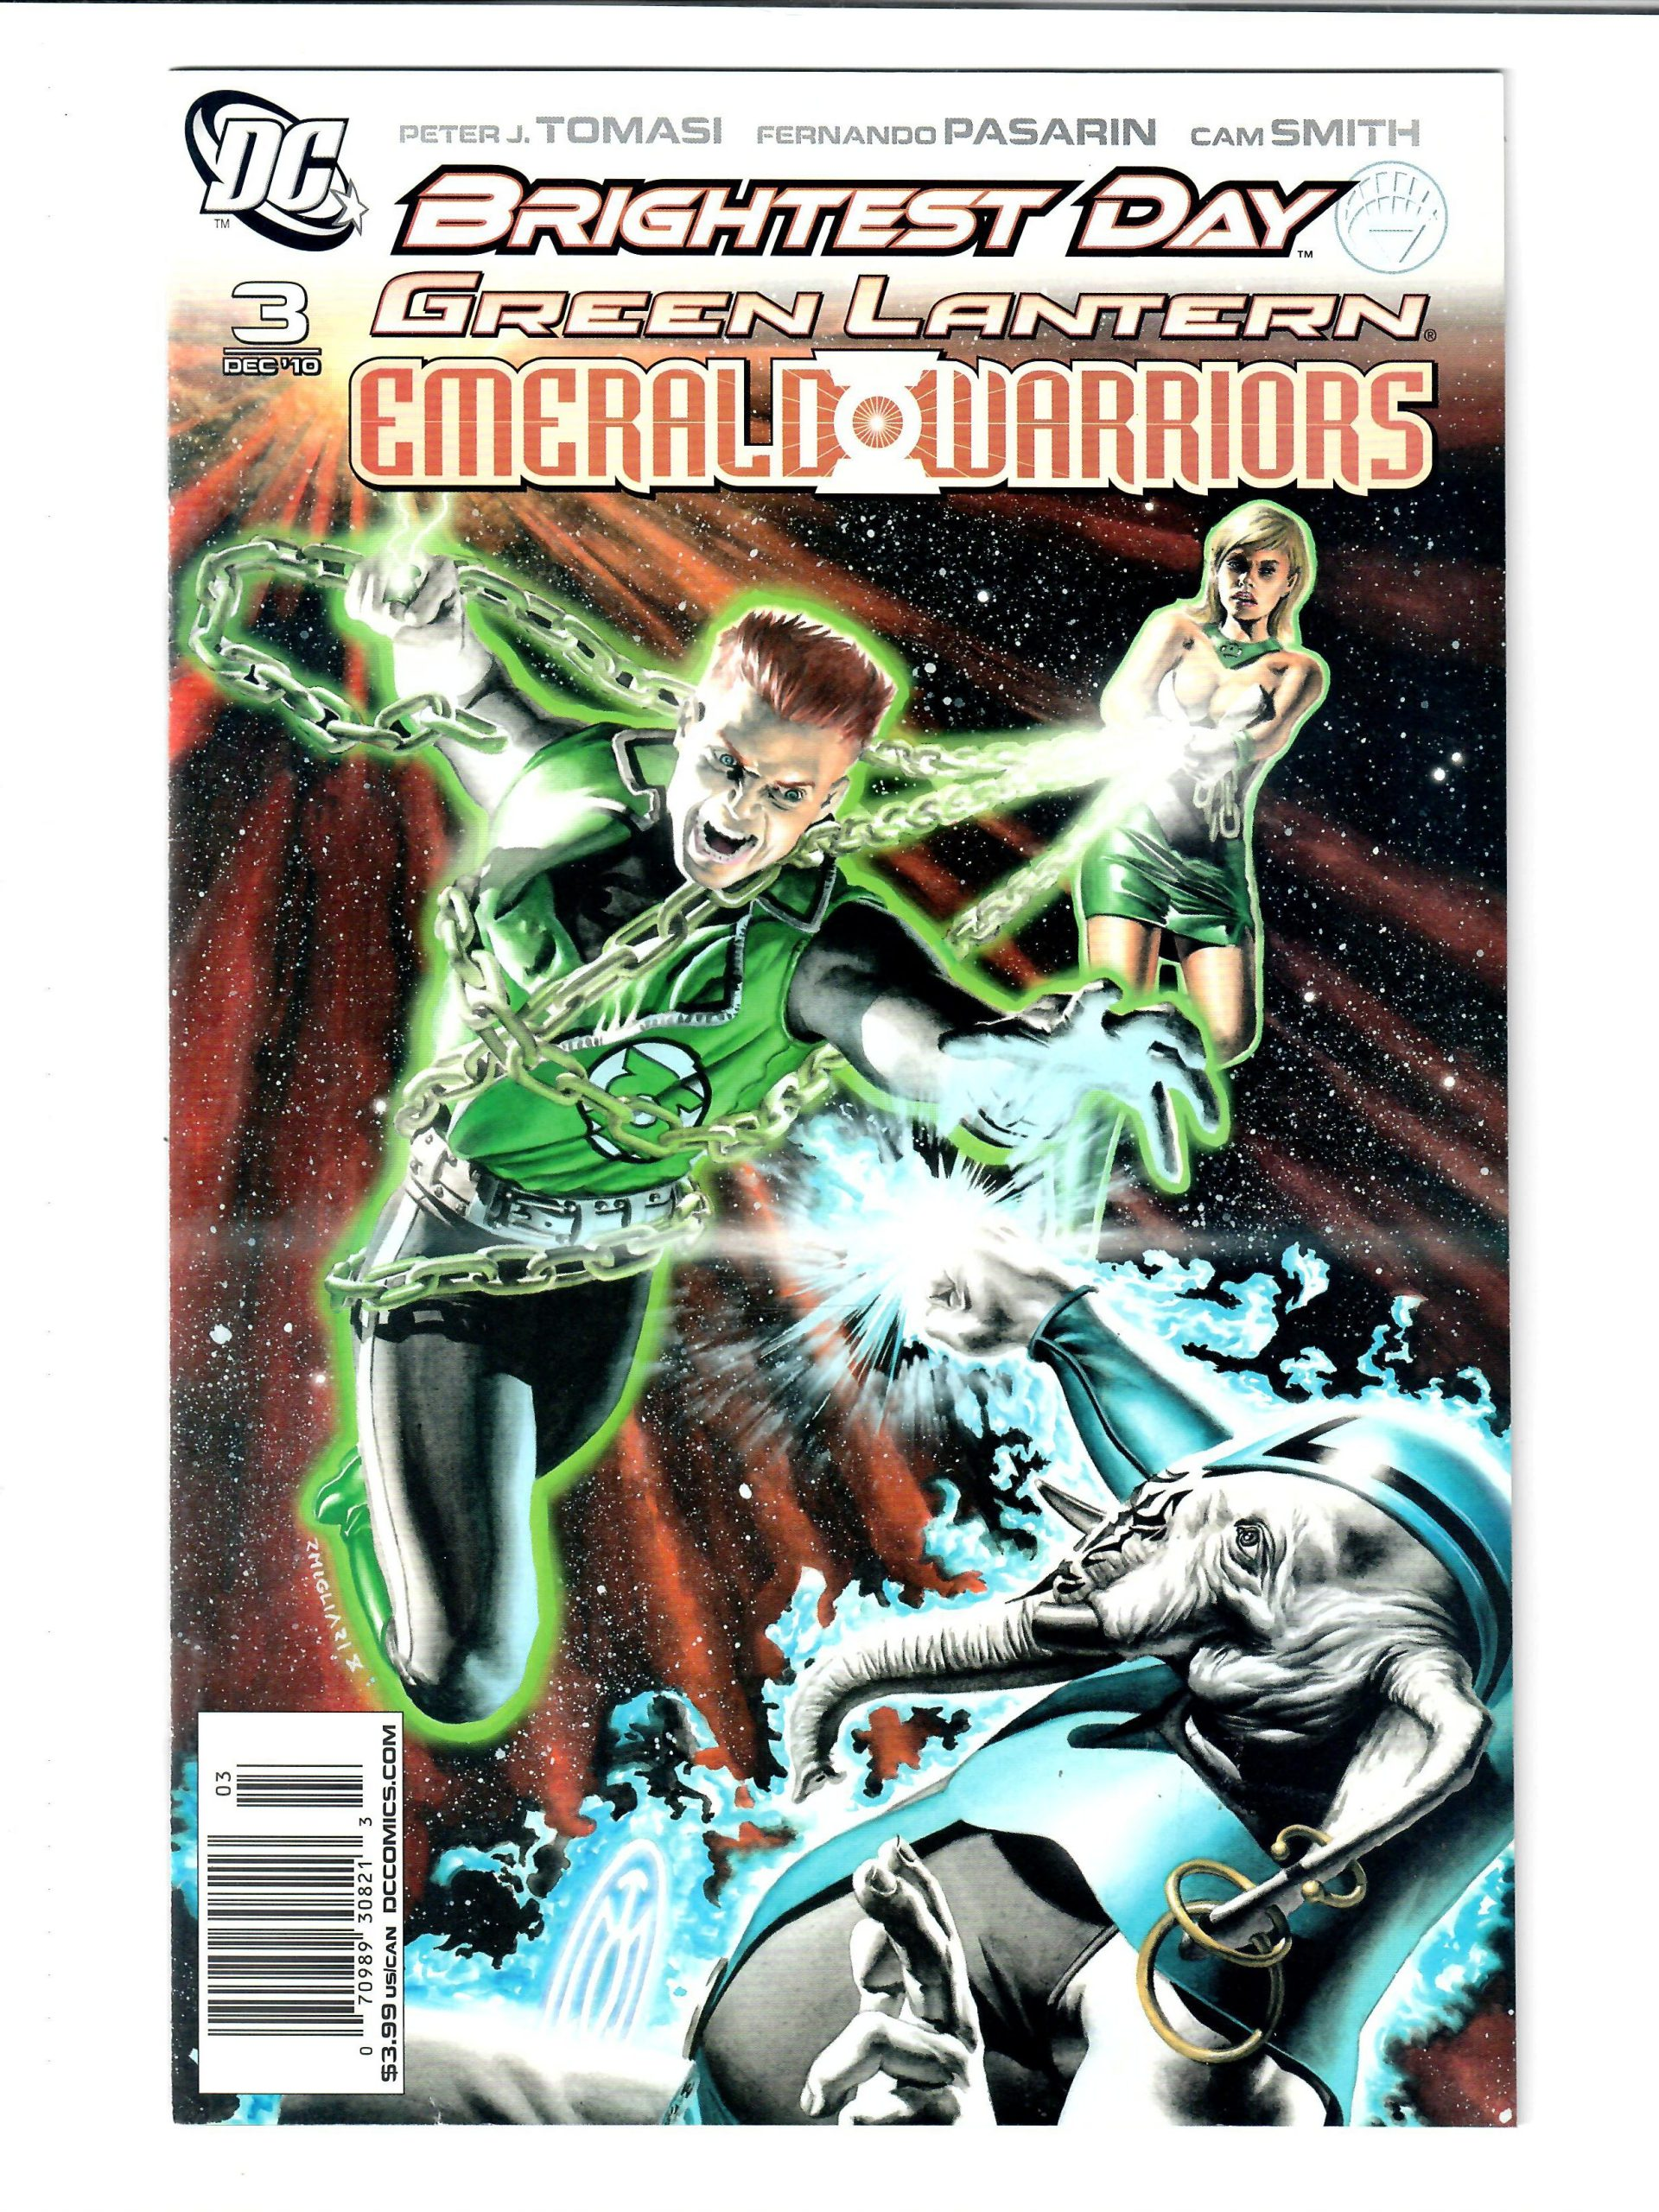 DC COMICS GREEN LANTERN #3 DEC 2010 VG COMIC #149837-D-2